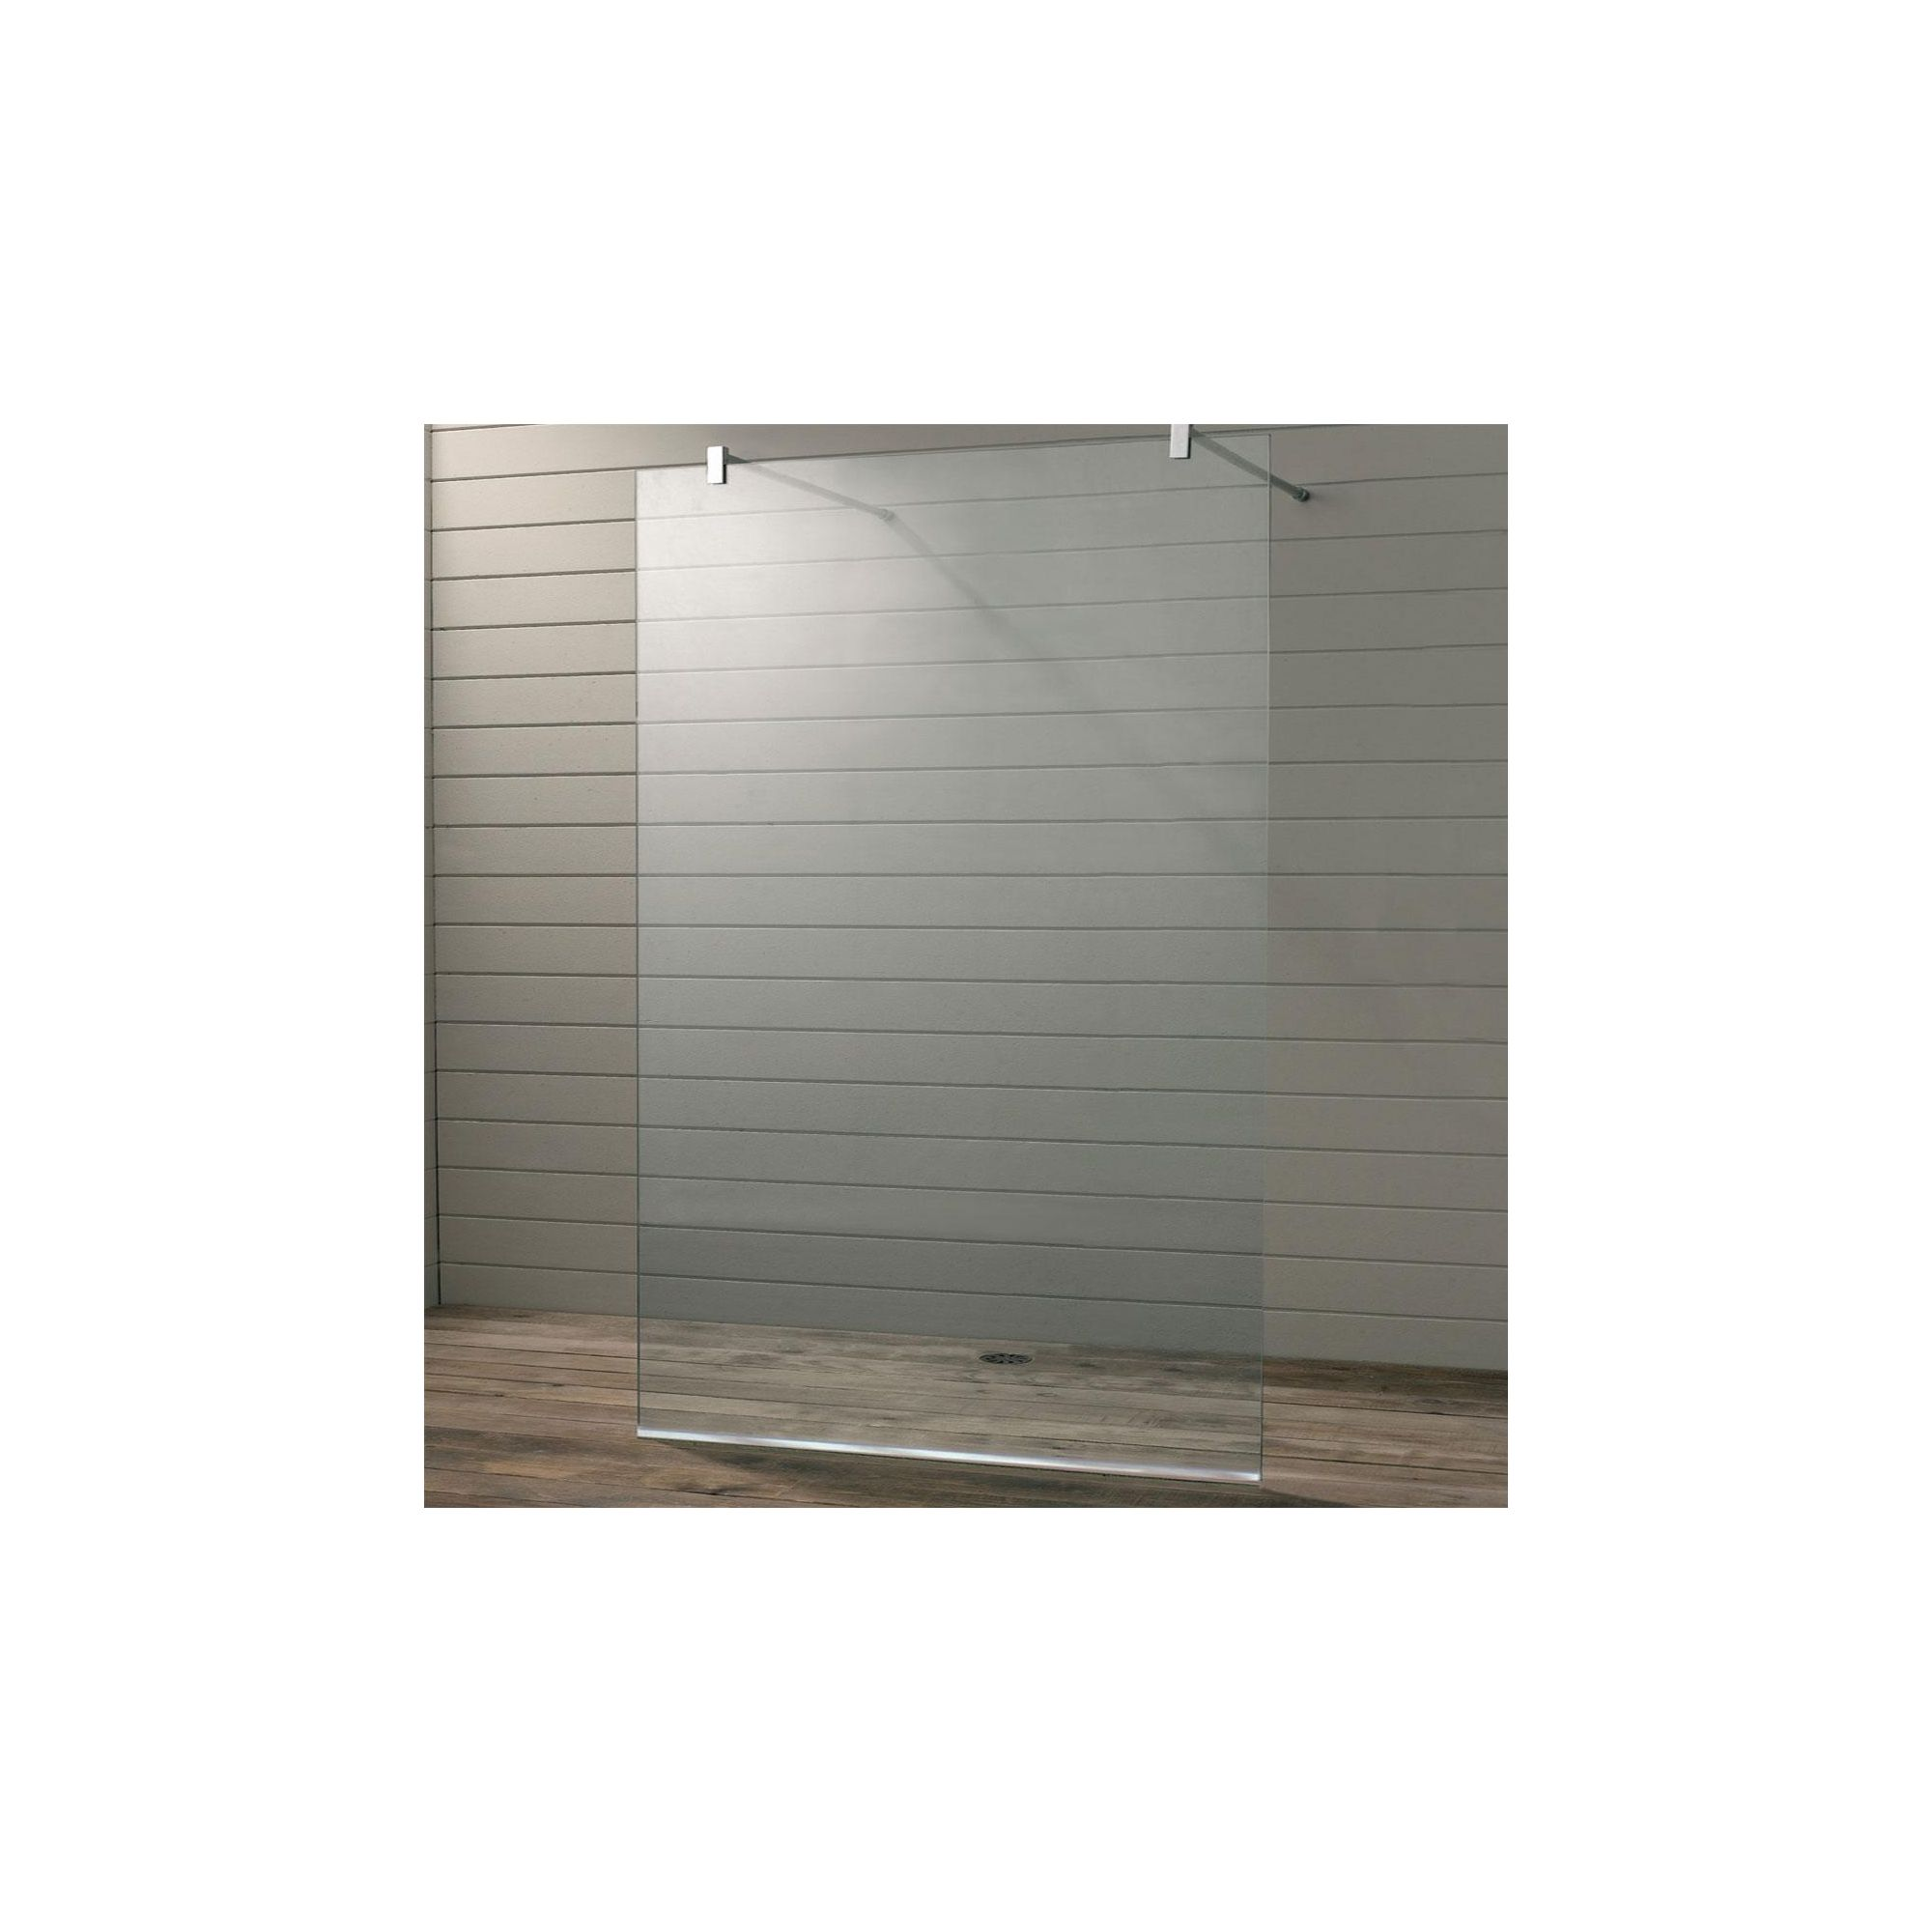 Duchy Premium Wet Room Glass Shower Panel, 1100mm x 760mm, 10mm Glass, Low Profile Tray at Tesco Direct